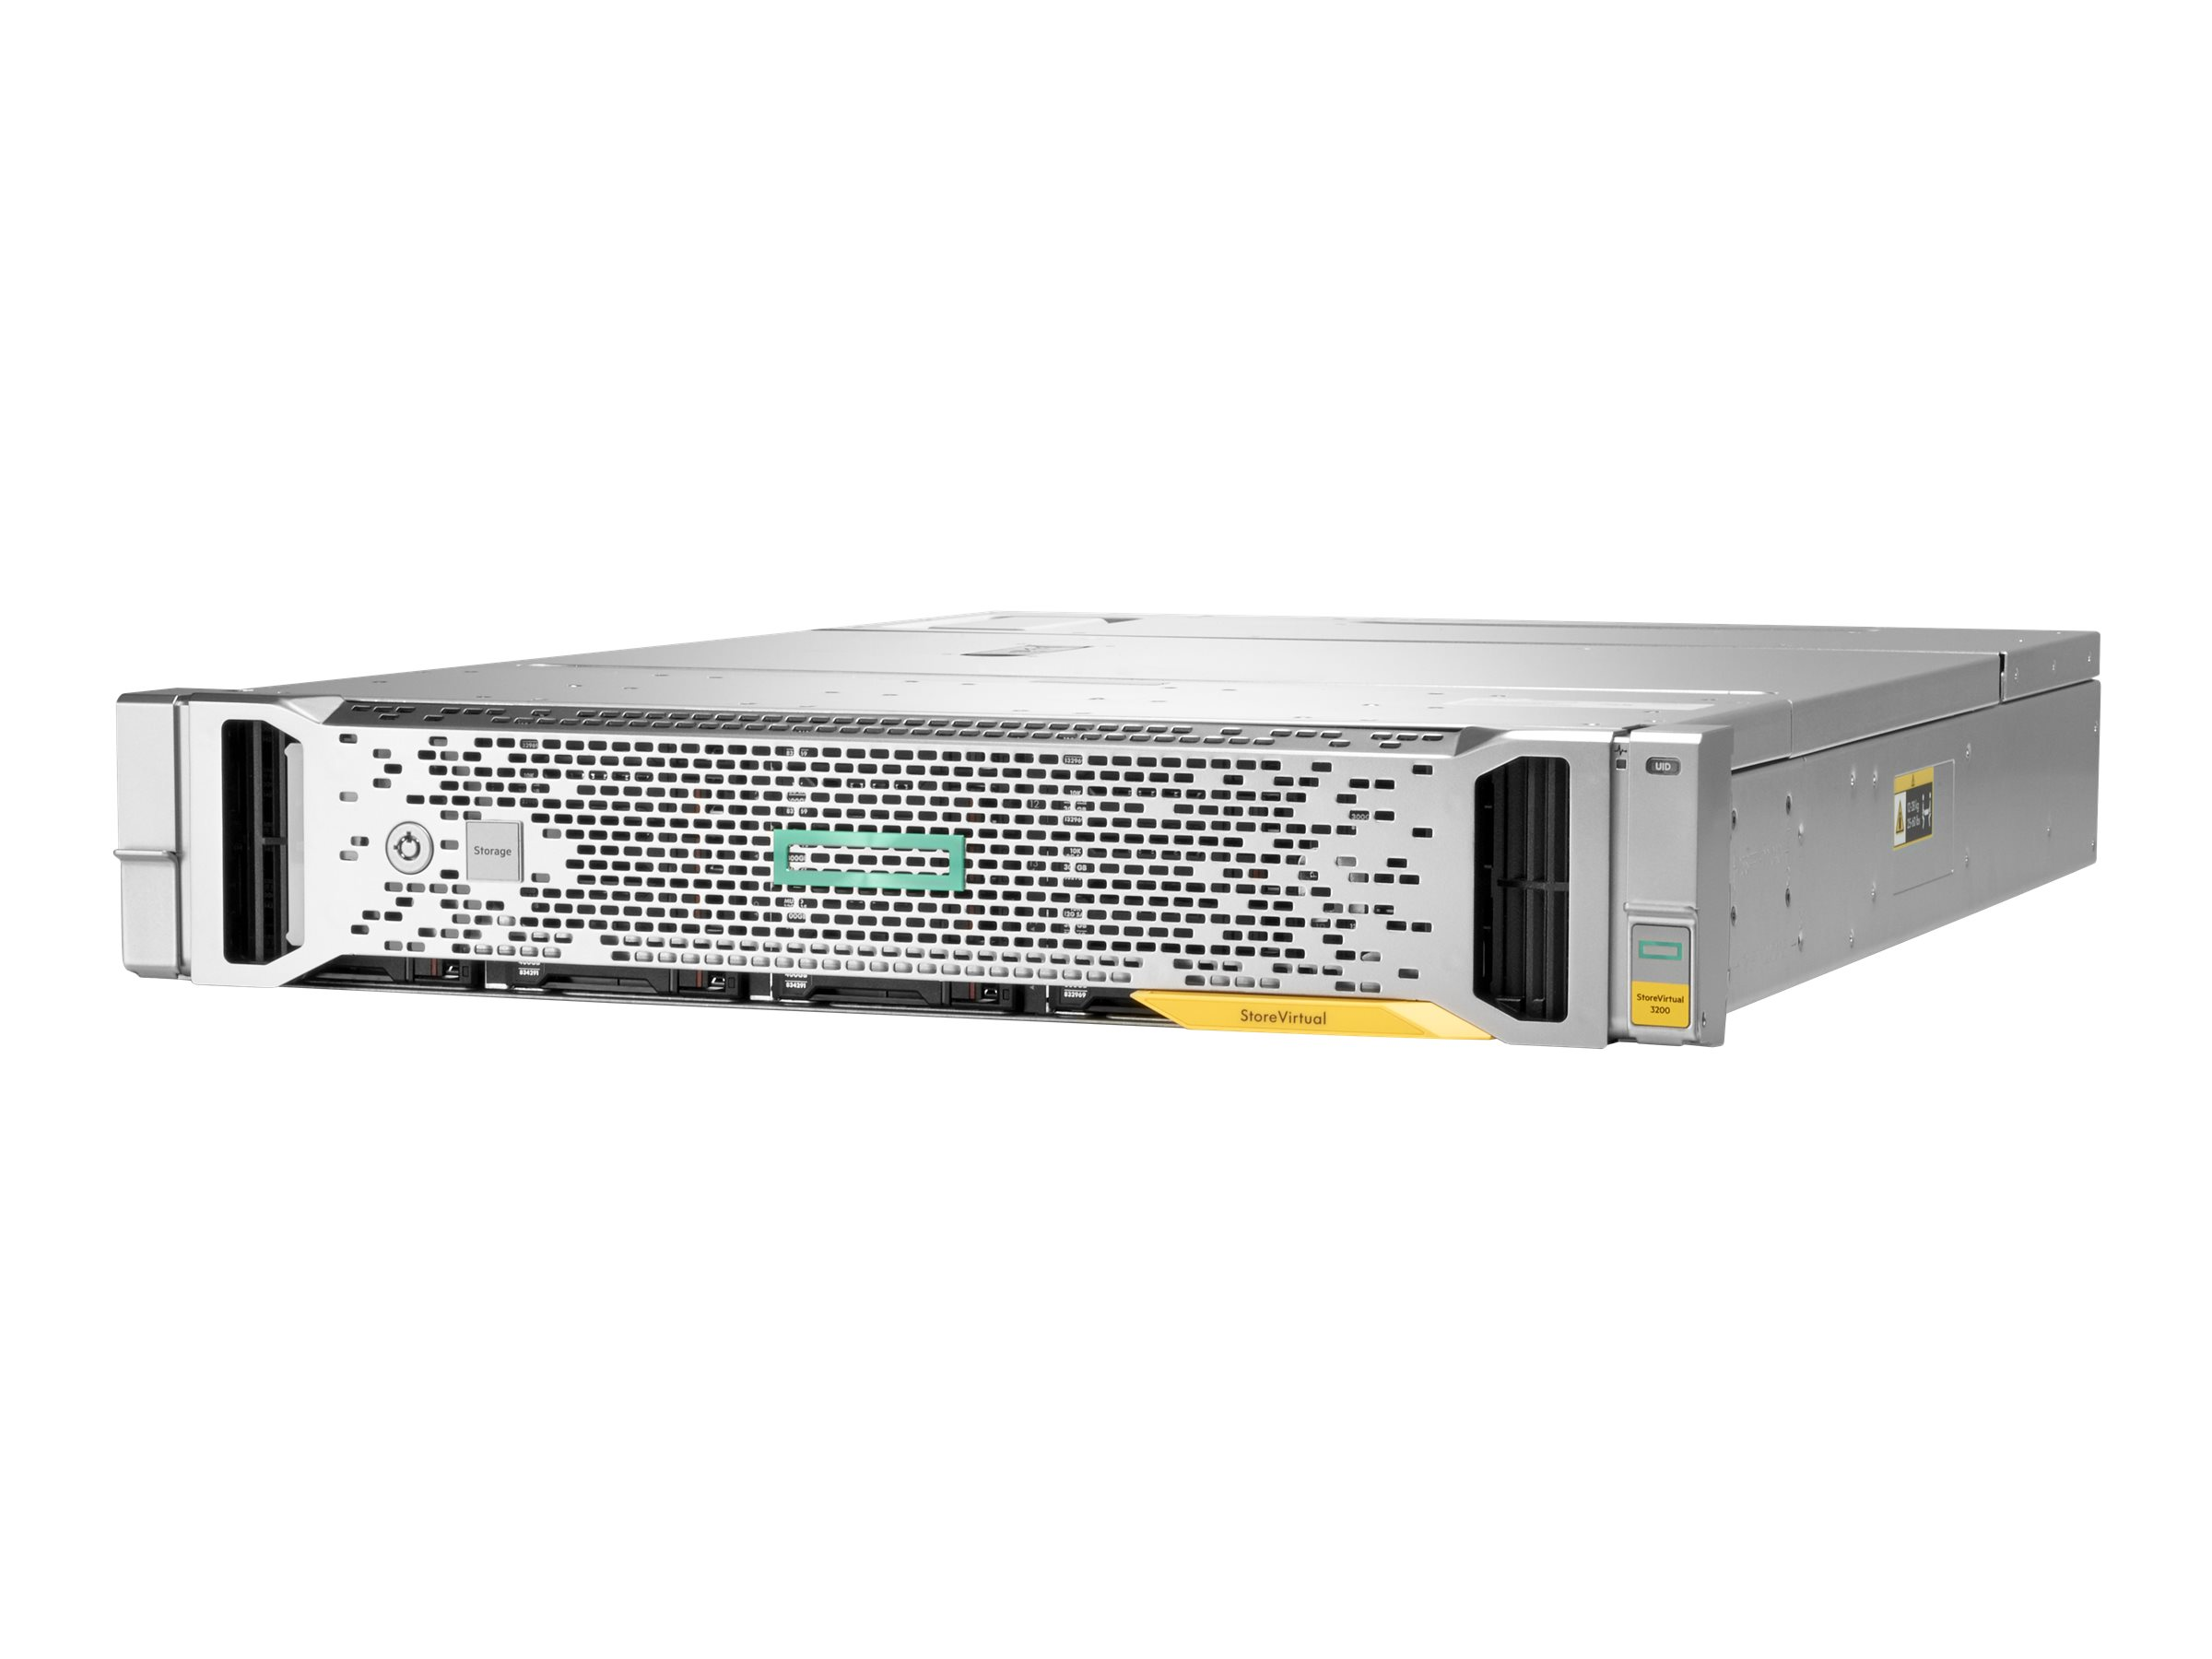 HPE StoreVirtual 3200 SFF - hard drive array